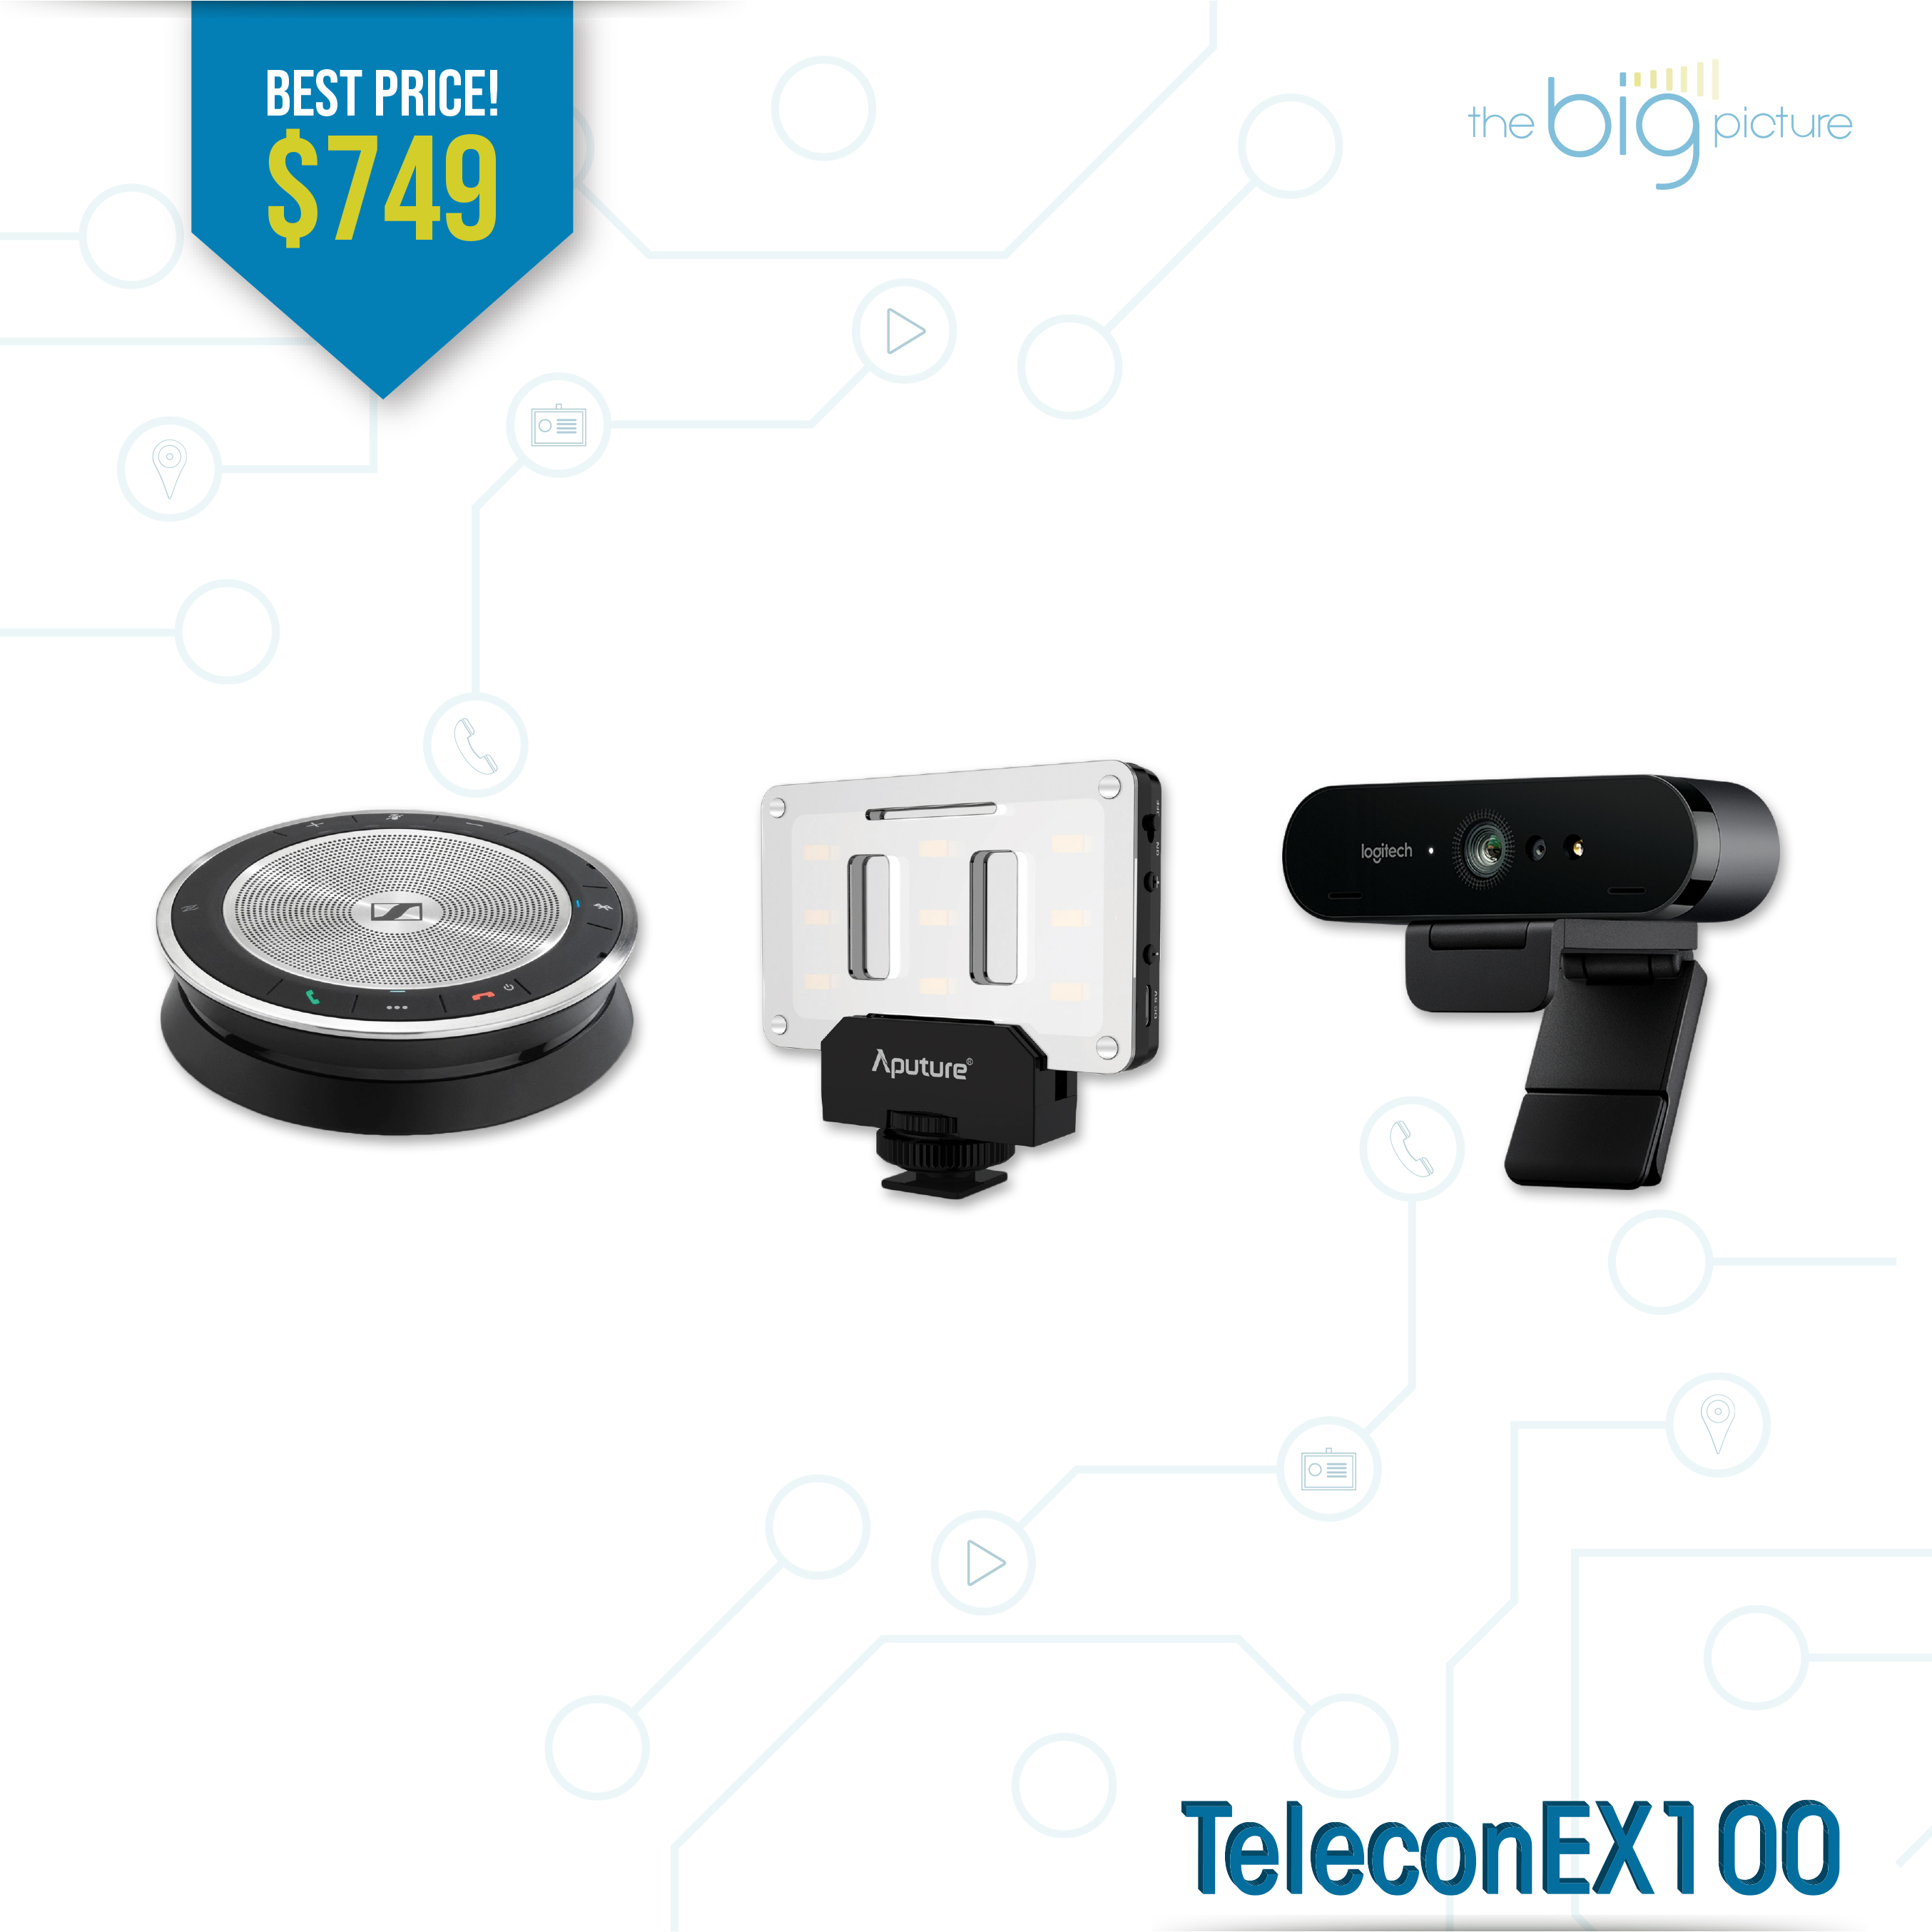 A set of products for TeleconEx100